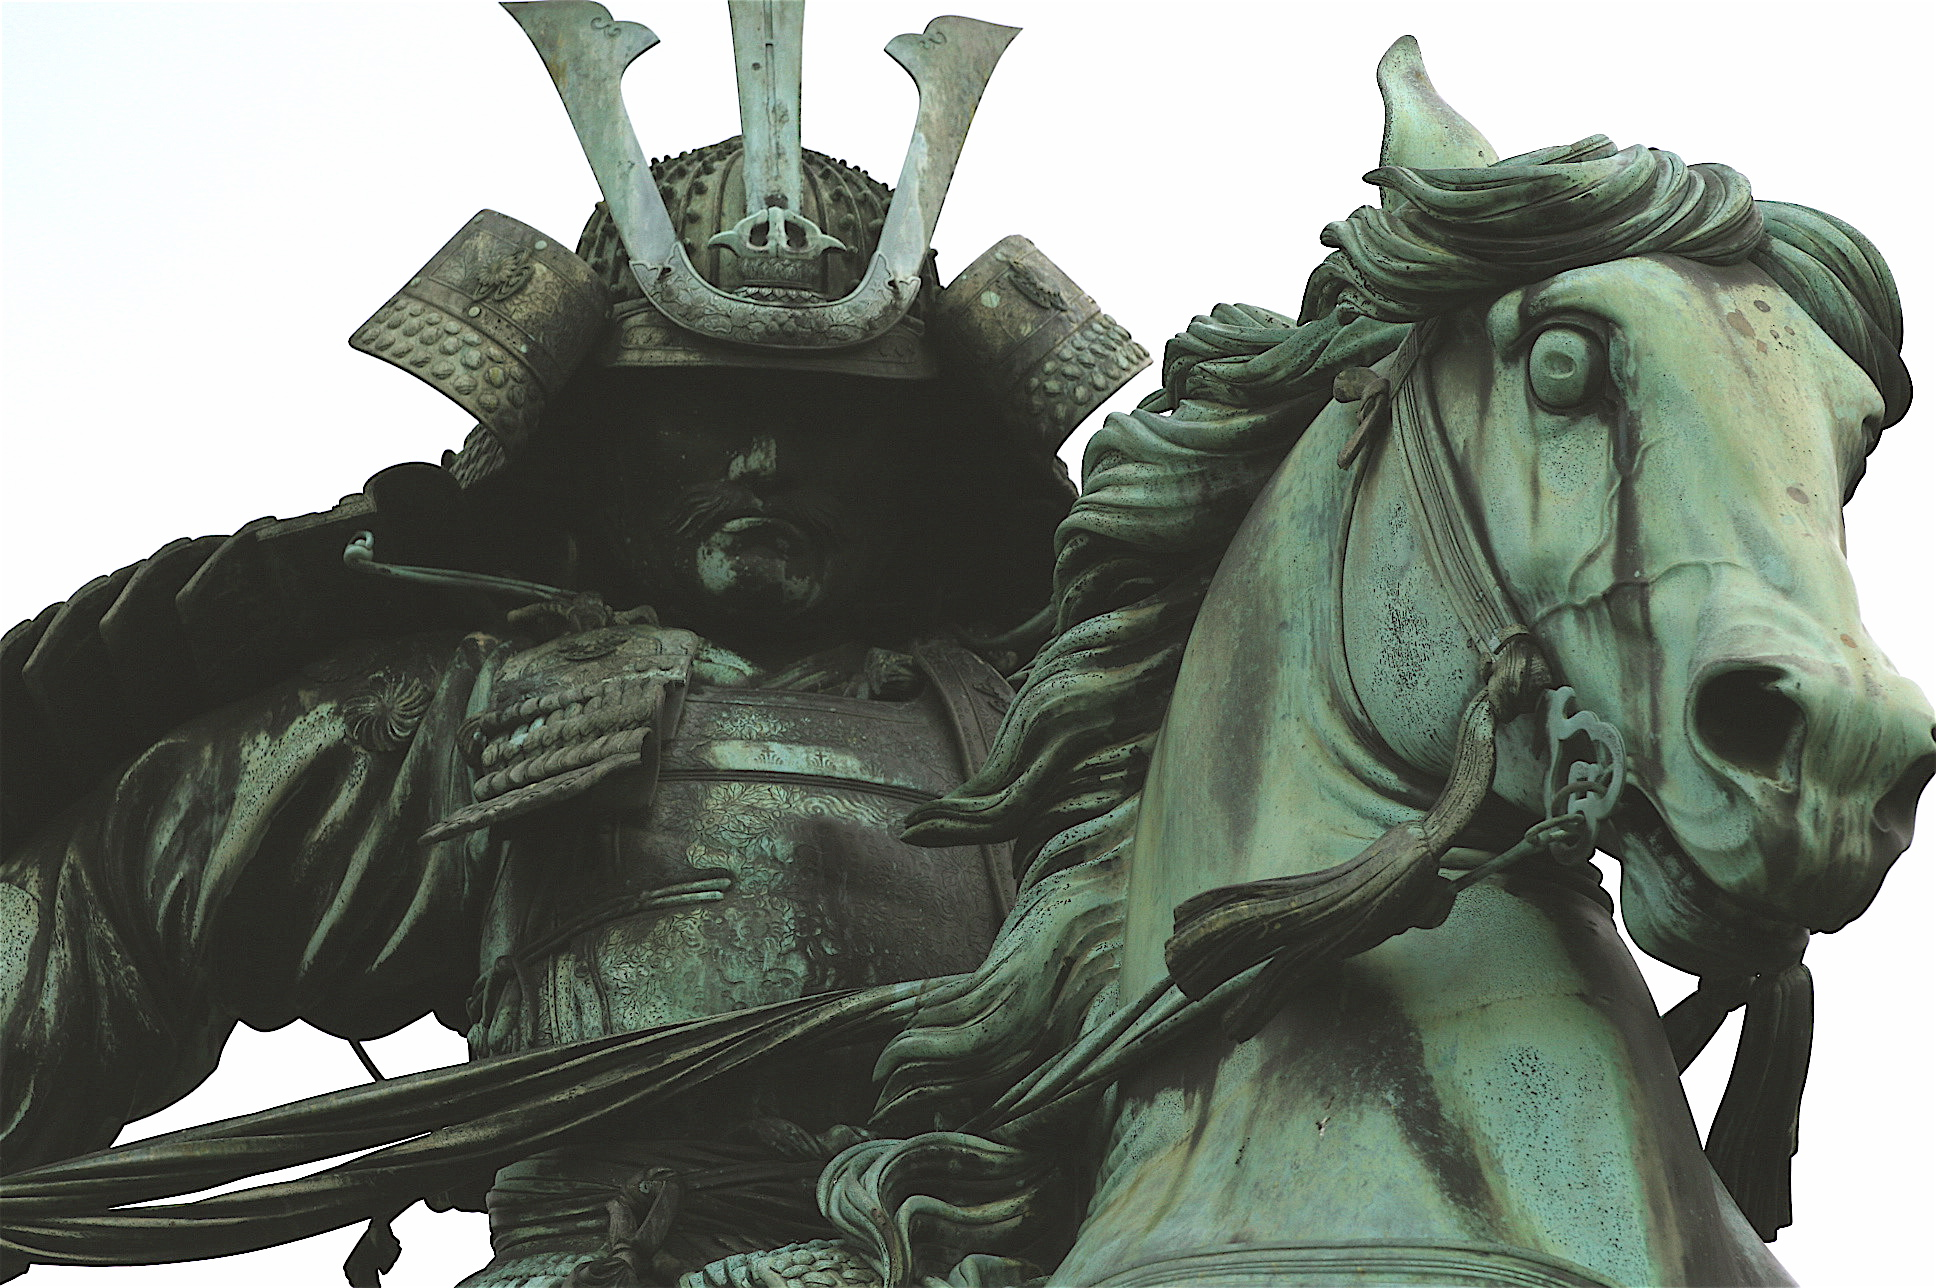 309 statue hd wallpapers | backgrounds - wallpaper abyss